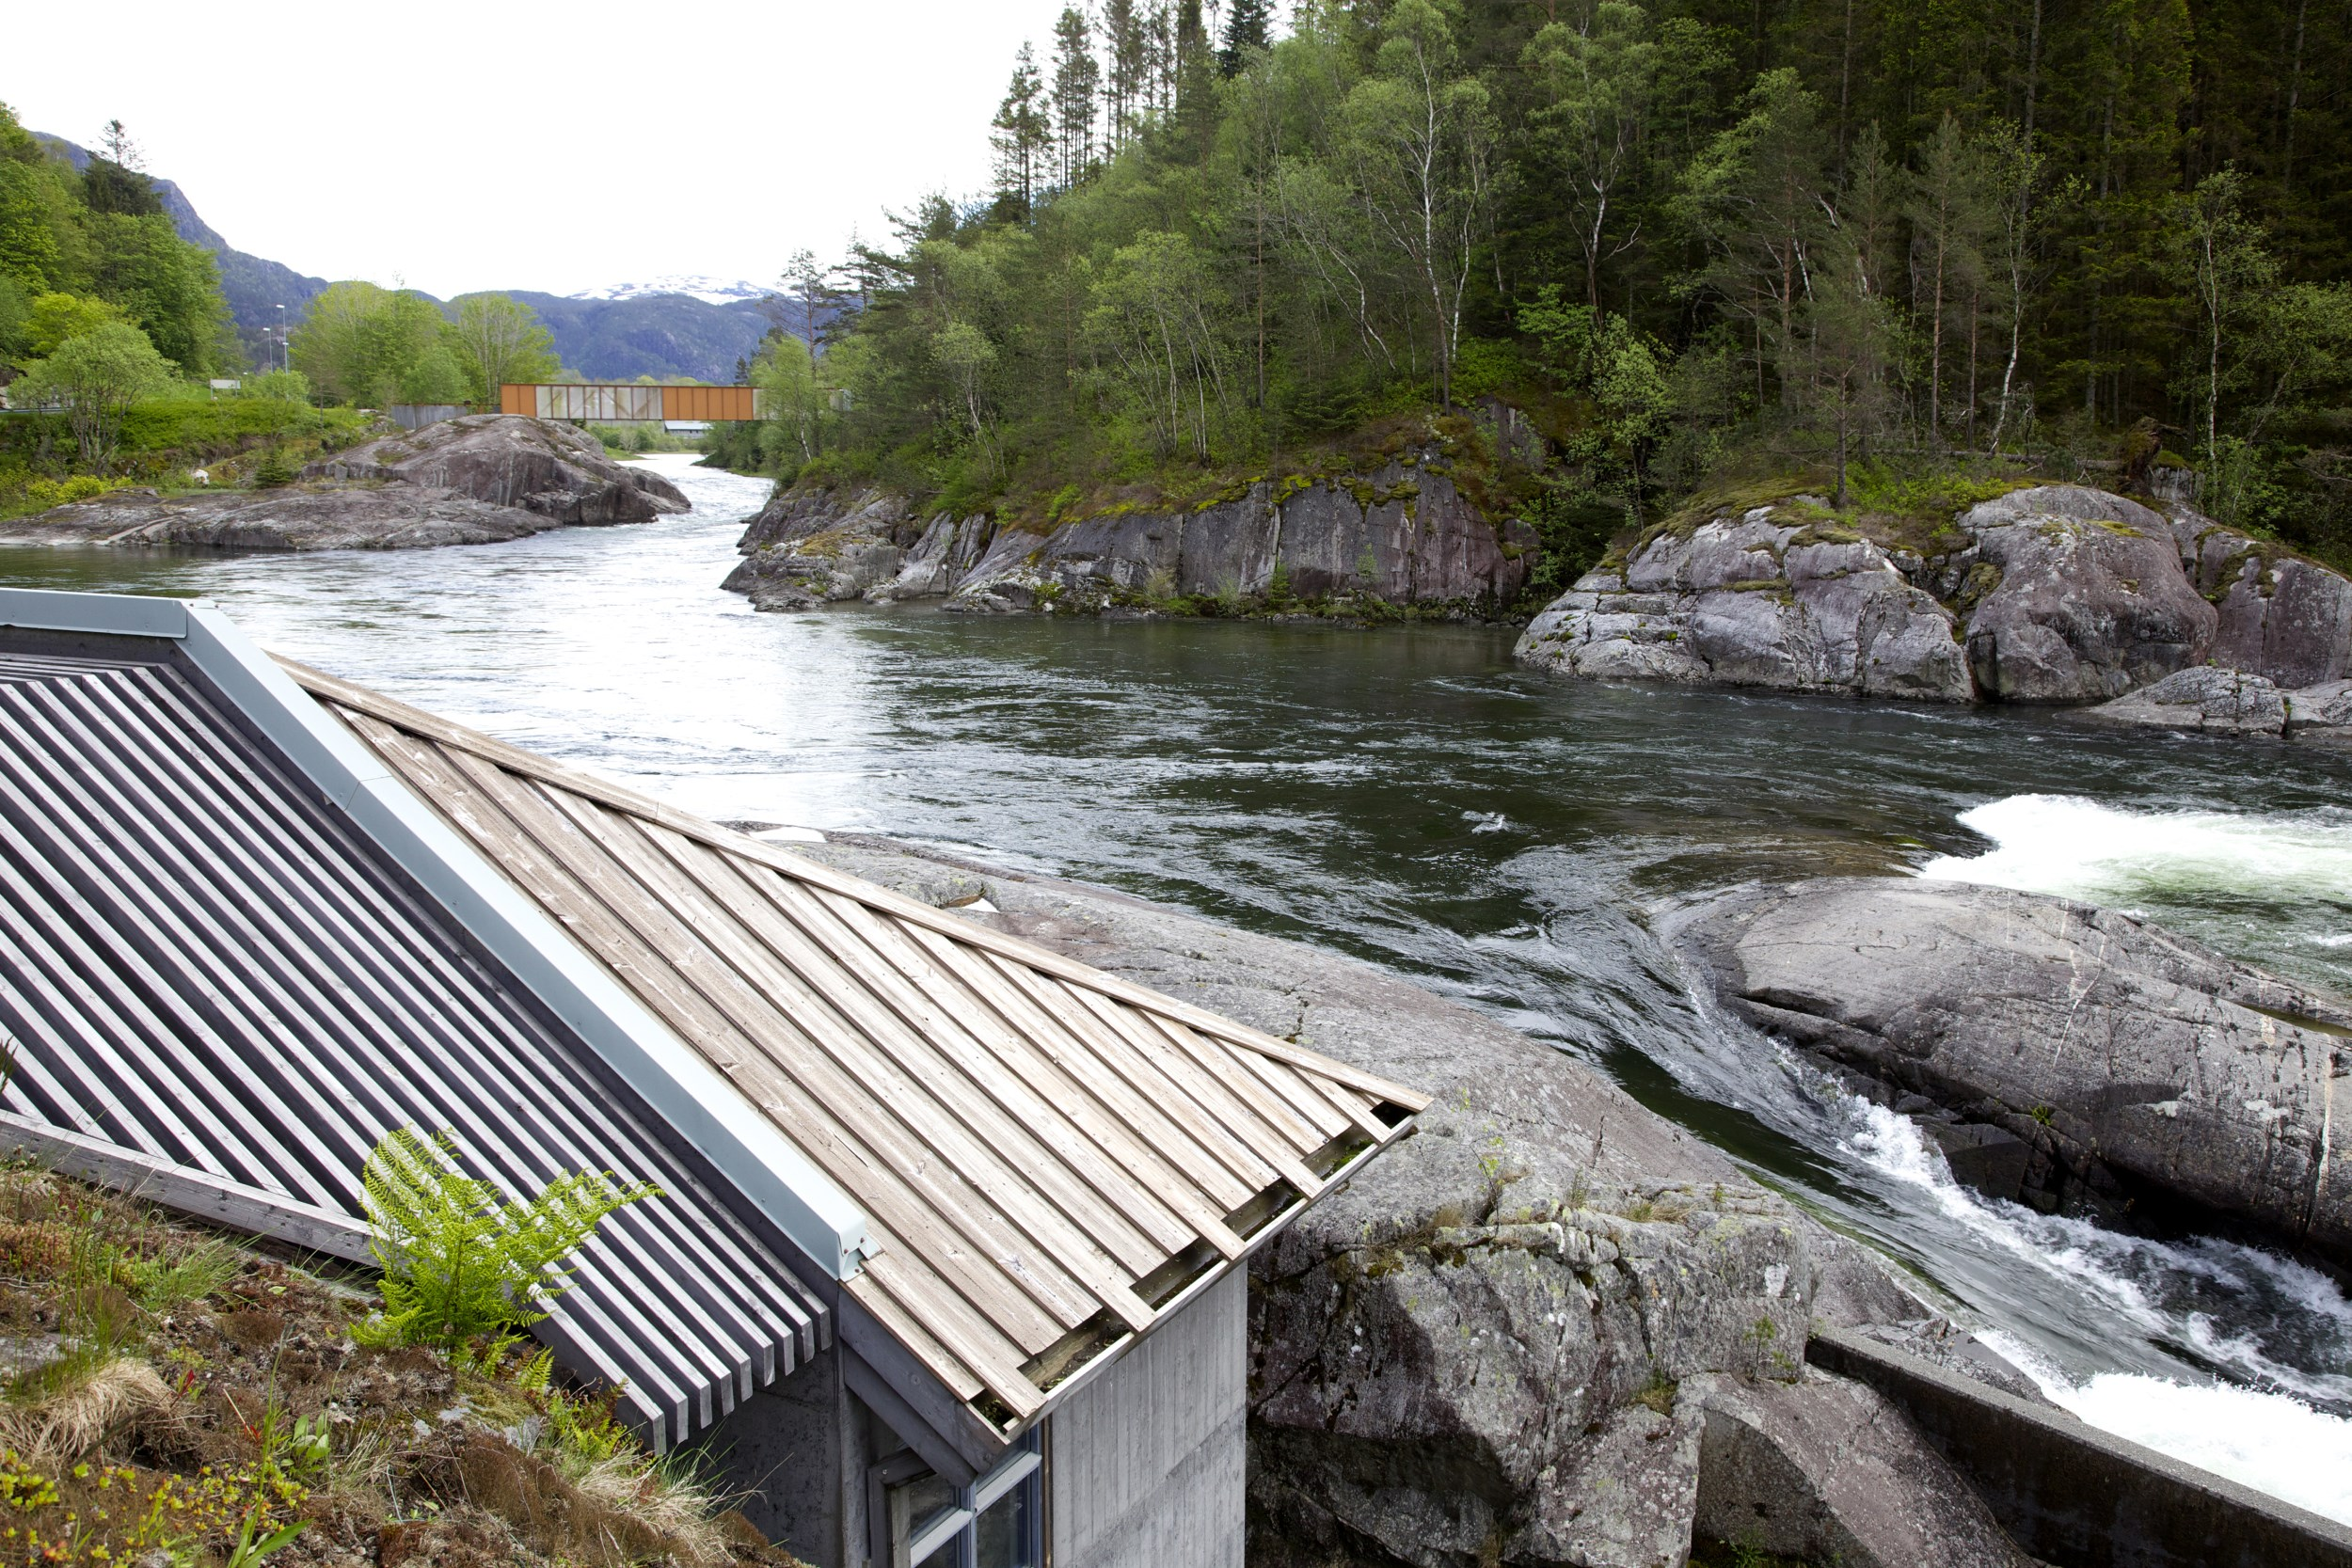 Salmon studio in Sandsfossen waterfall